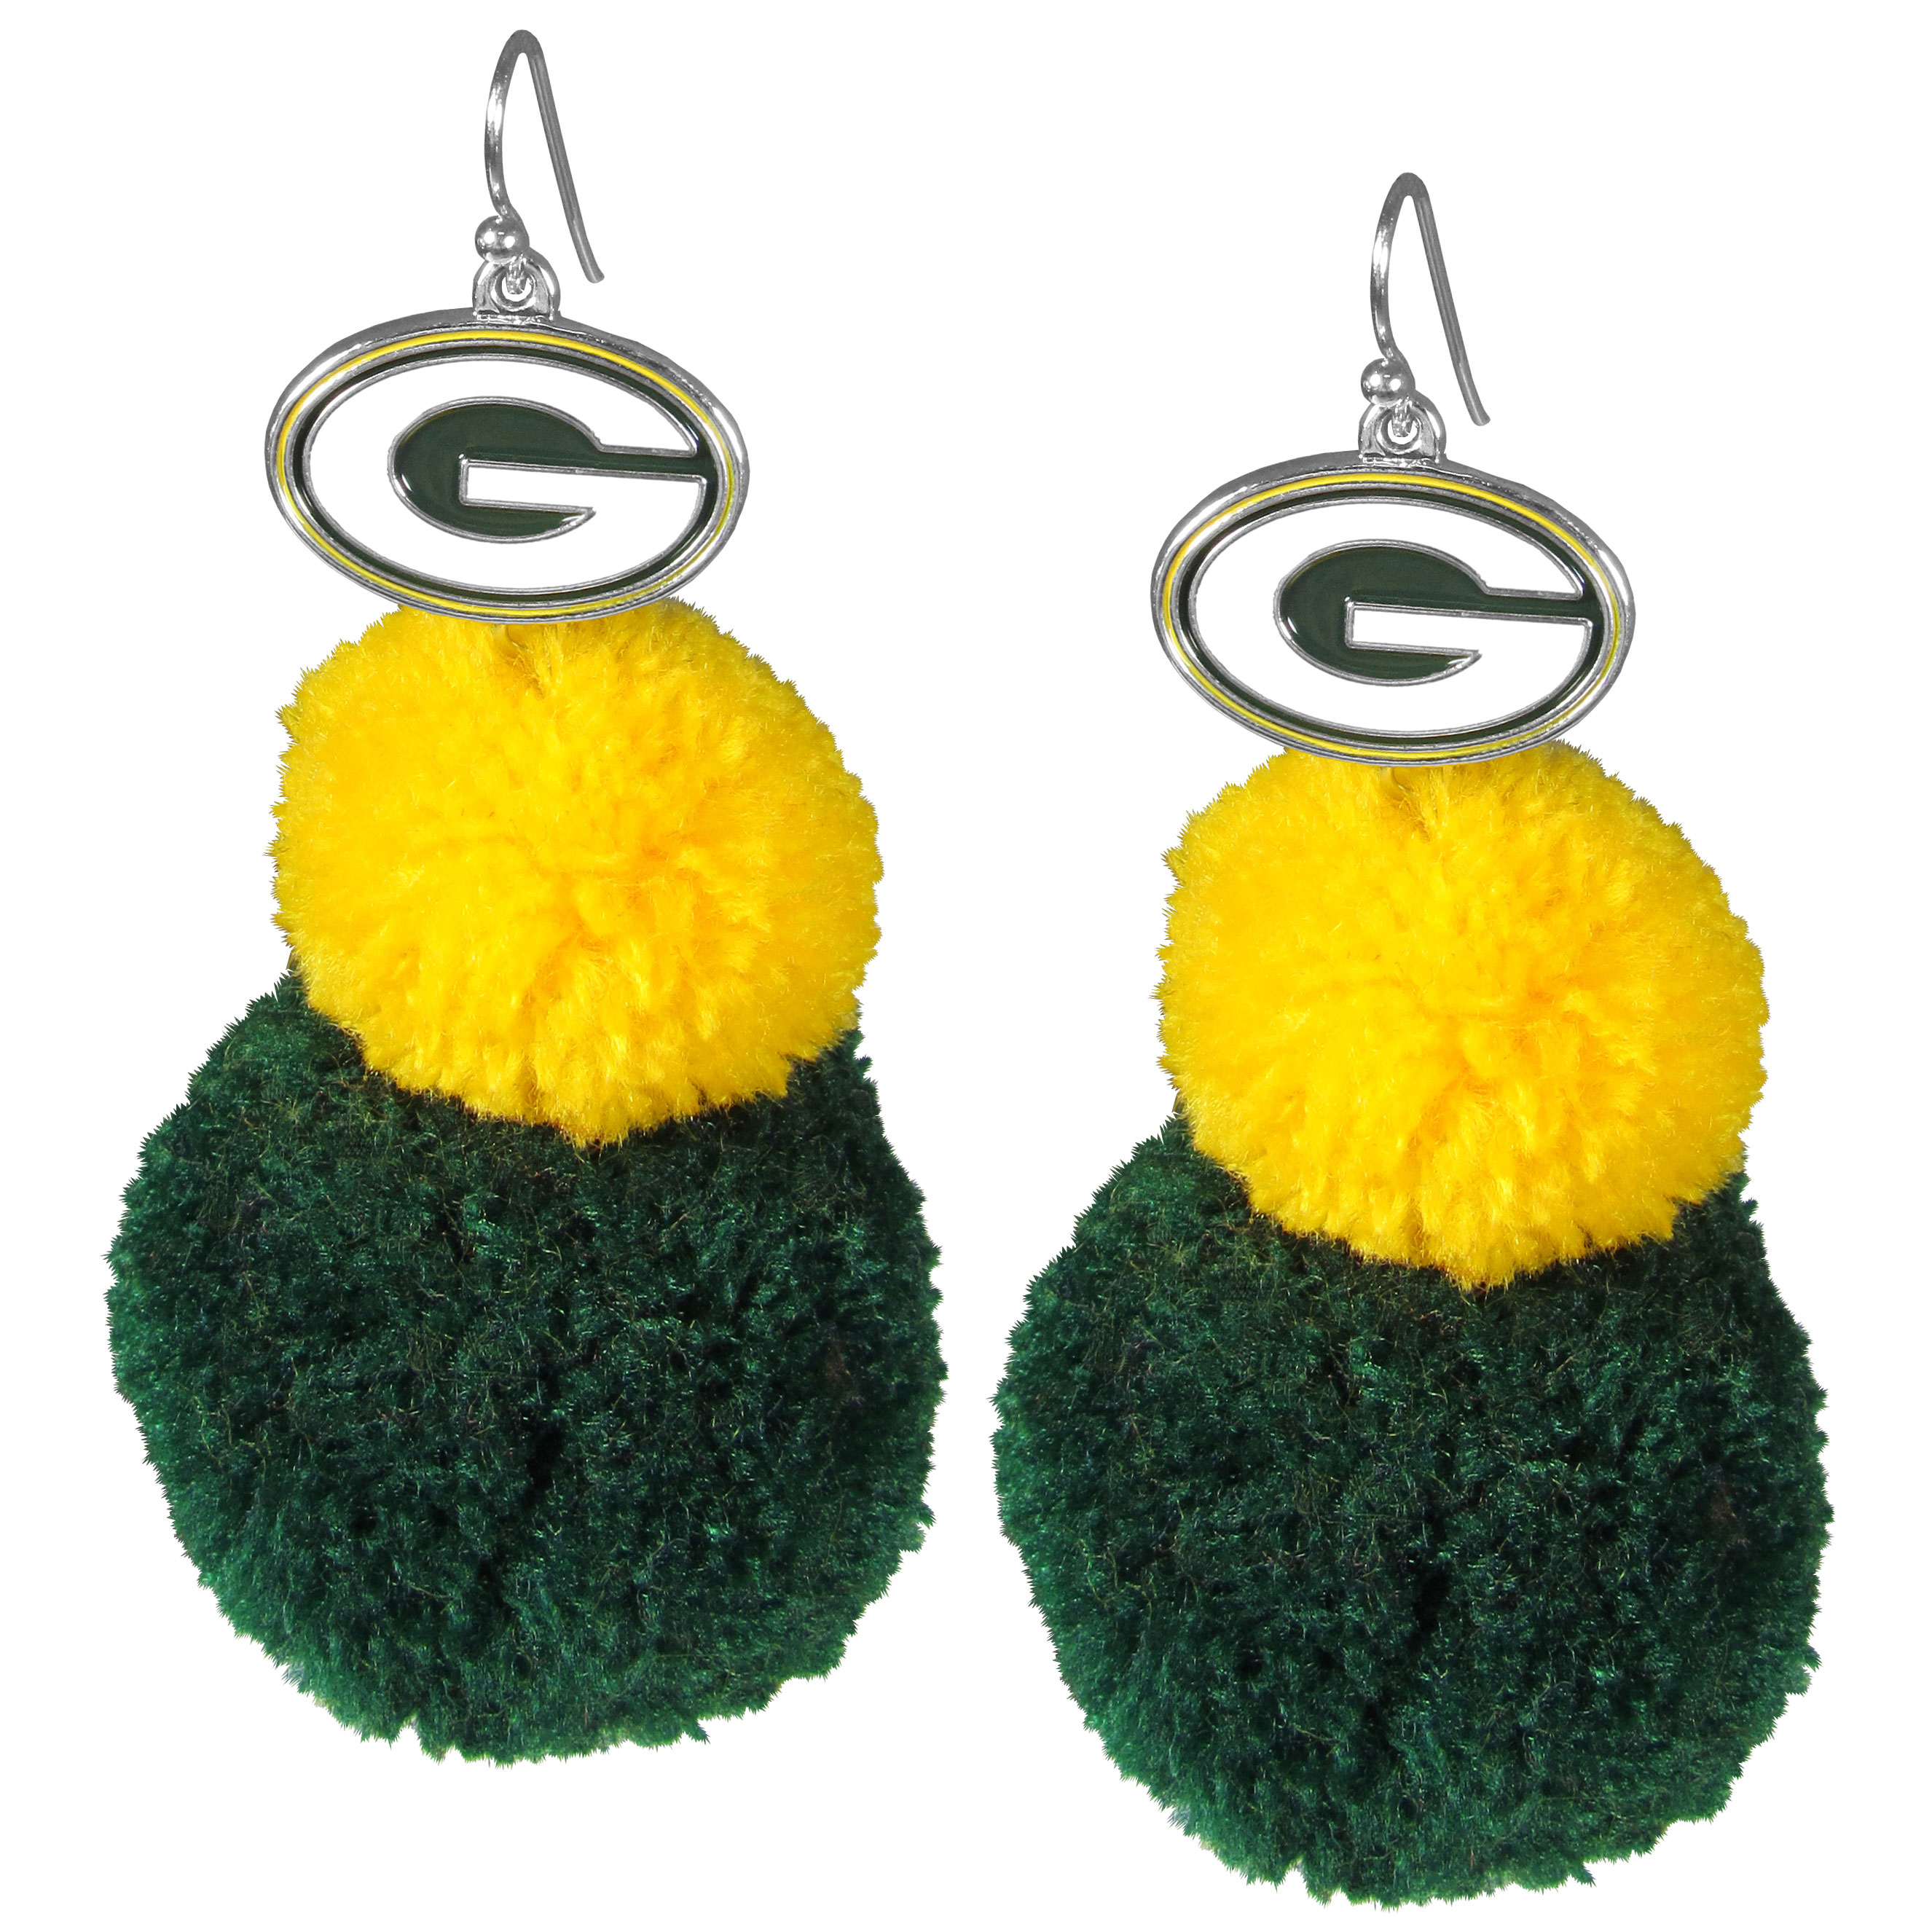 Green Bay Packers Pom Pom Earrings - These fun and bold earrings are a game day must! The earrings feature a metal Green Bay Packers charm with enameled color details that hangs above to colorful pom pom charms. The largest pom is 1.5 inches round for, the earrings hang at 3.5 inches long. The fishhook posts are nickel free and hypoallergenic.